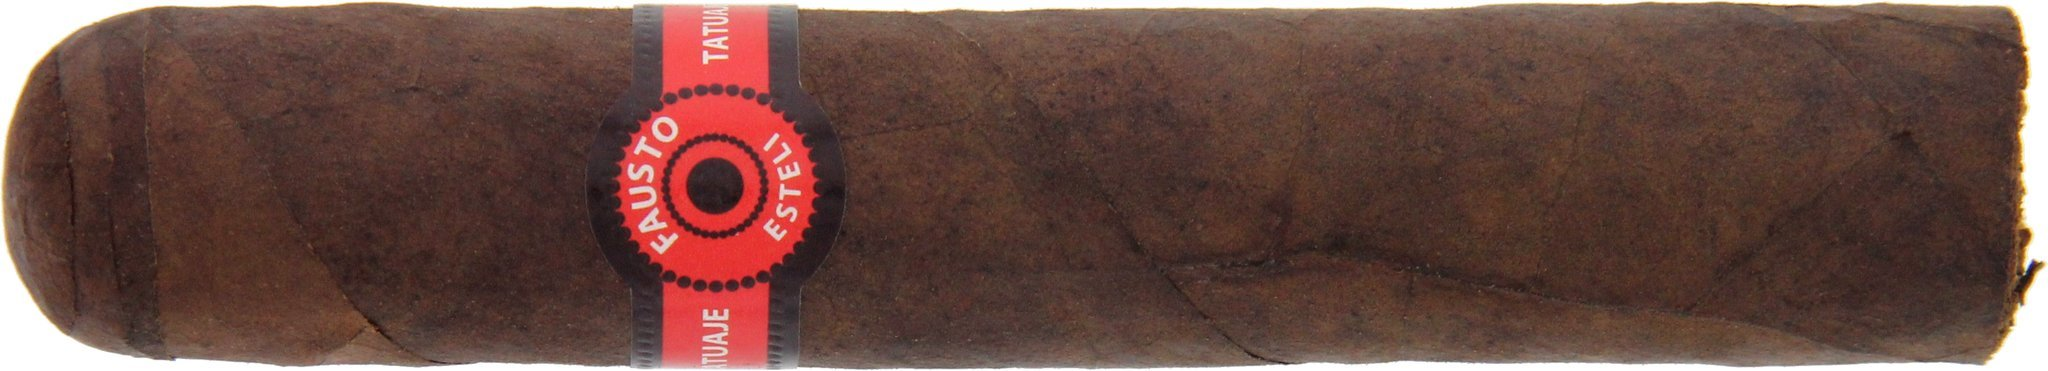 Tatuaje Fausto FT 114 (Short Robusto)